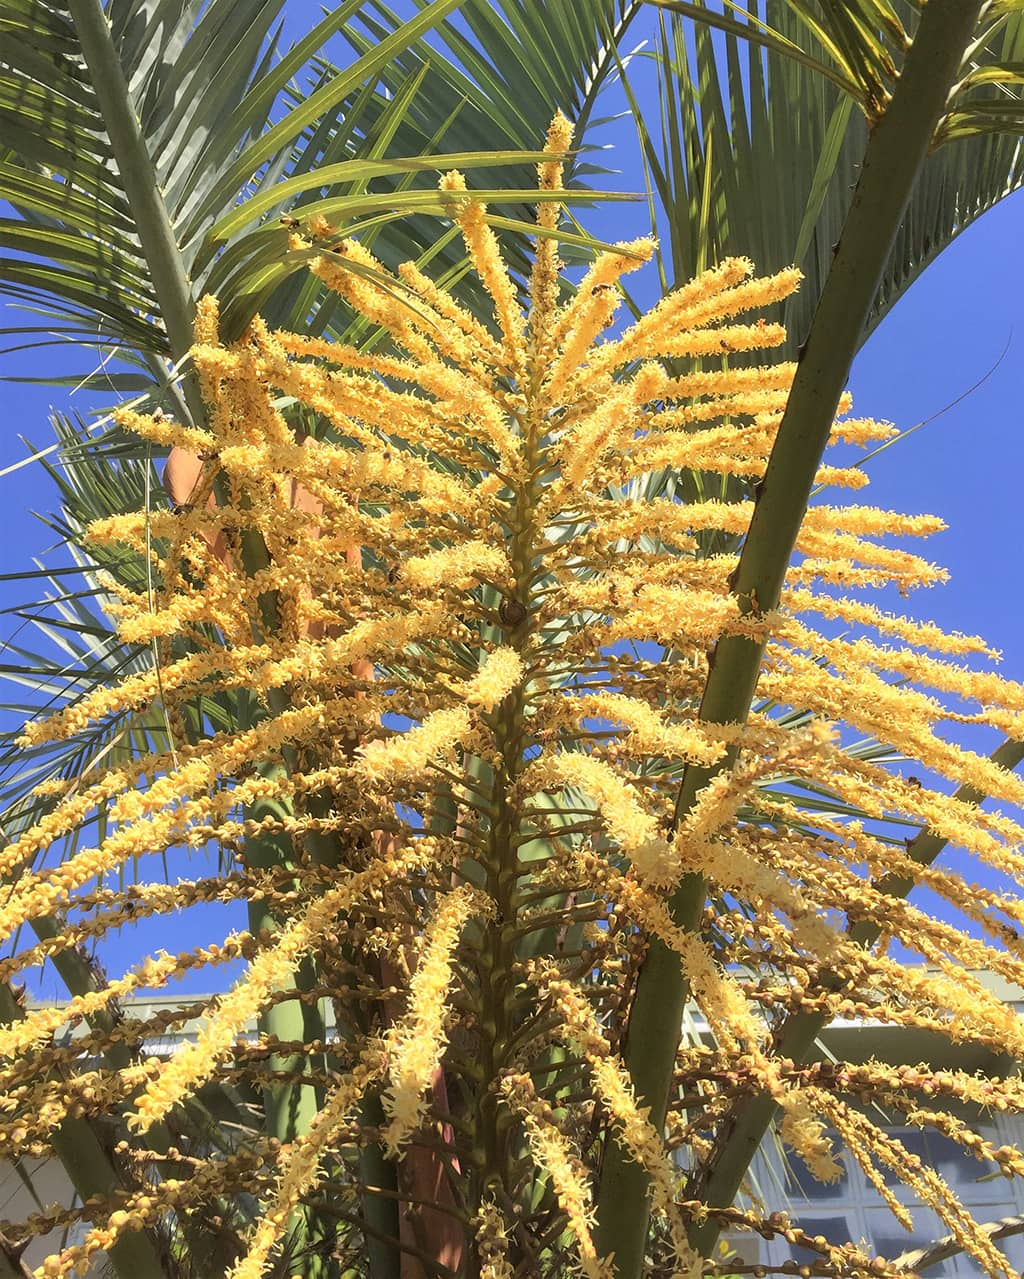 Jelly Palm Flowers by David Gress - Tree of the Month Sept 2020